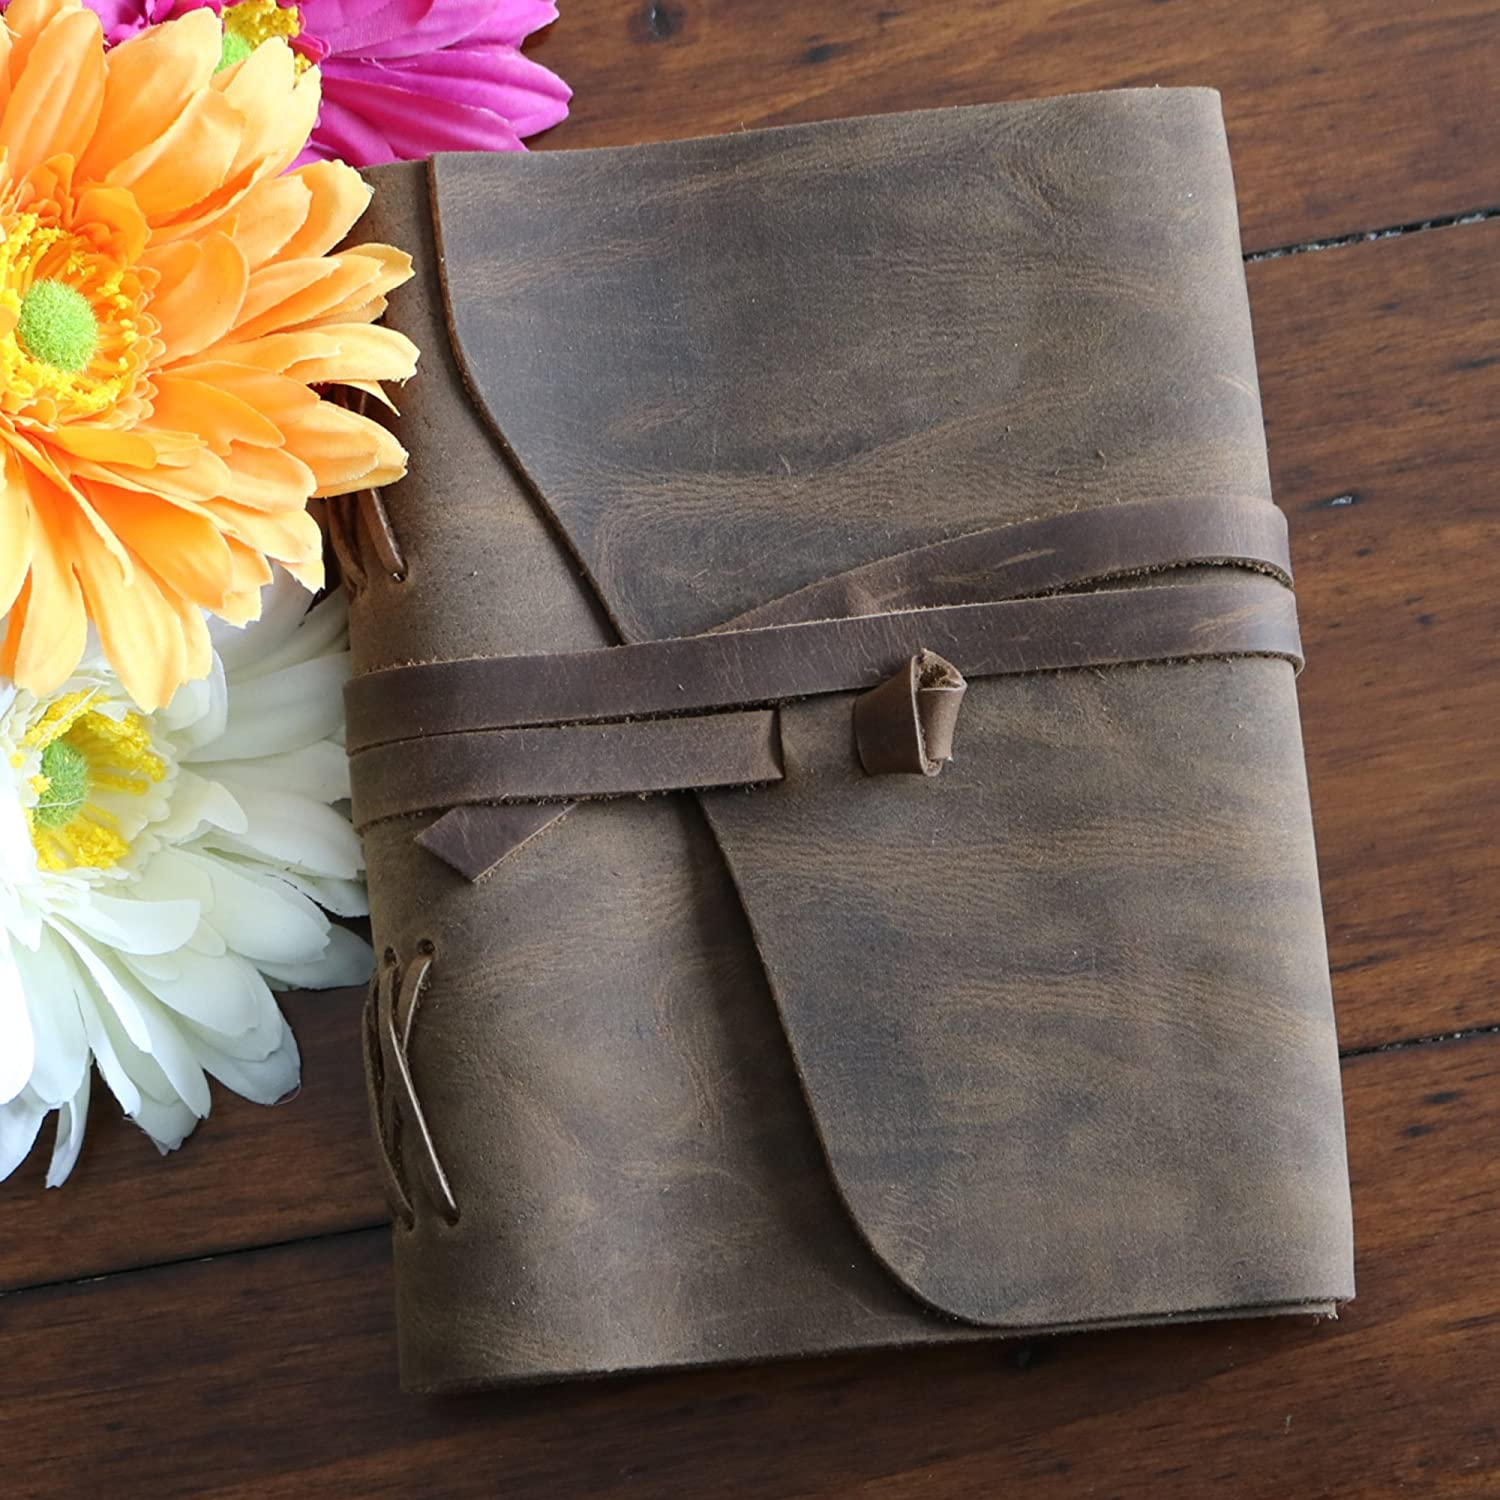 Outrider Leather Journal Notebook Diary Blank Book with Strap 5 X 7